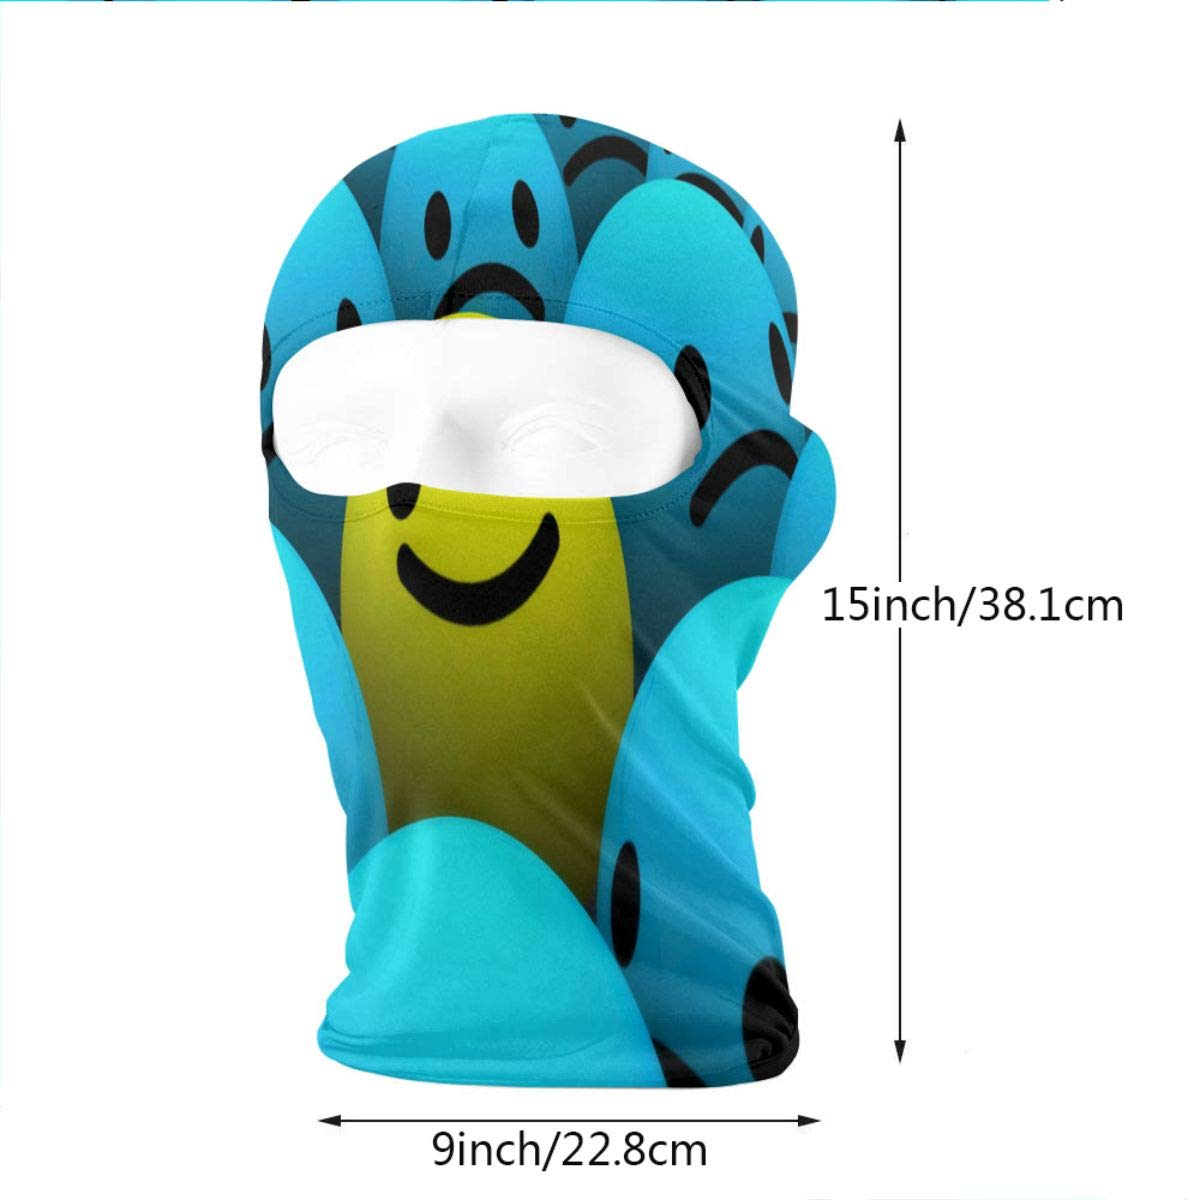 Balaclava Cute Valentine Emoji Full Face Masks Ski Headcover Motorcycle Hood For Cycling Sports Hiking